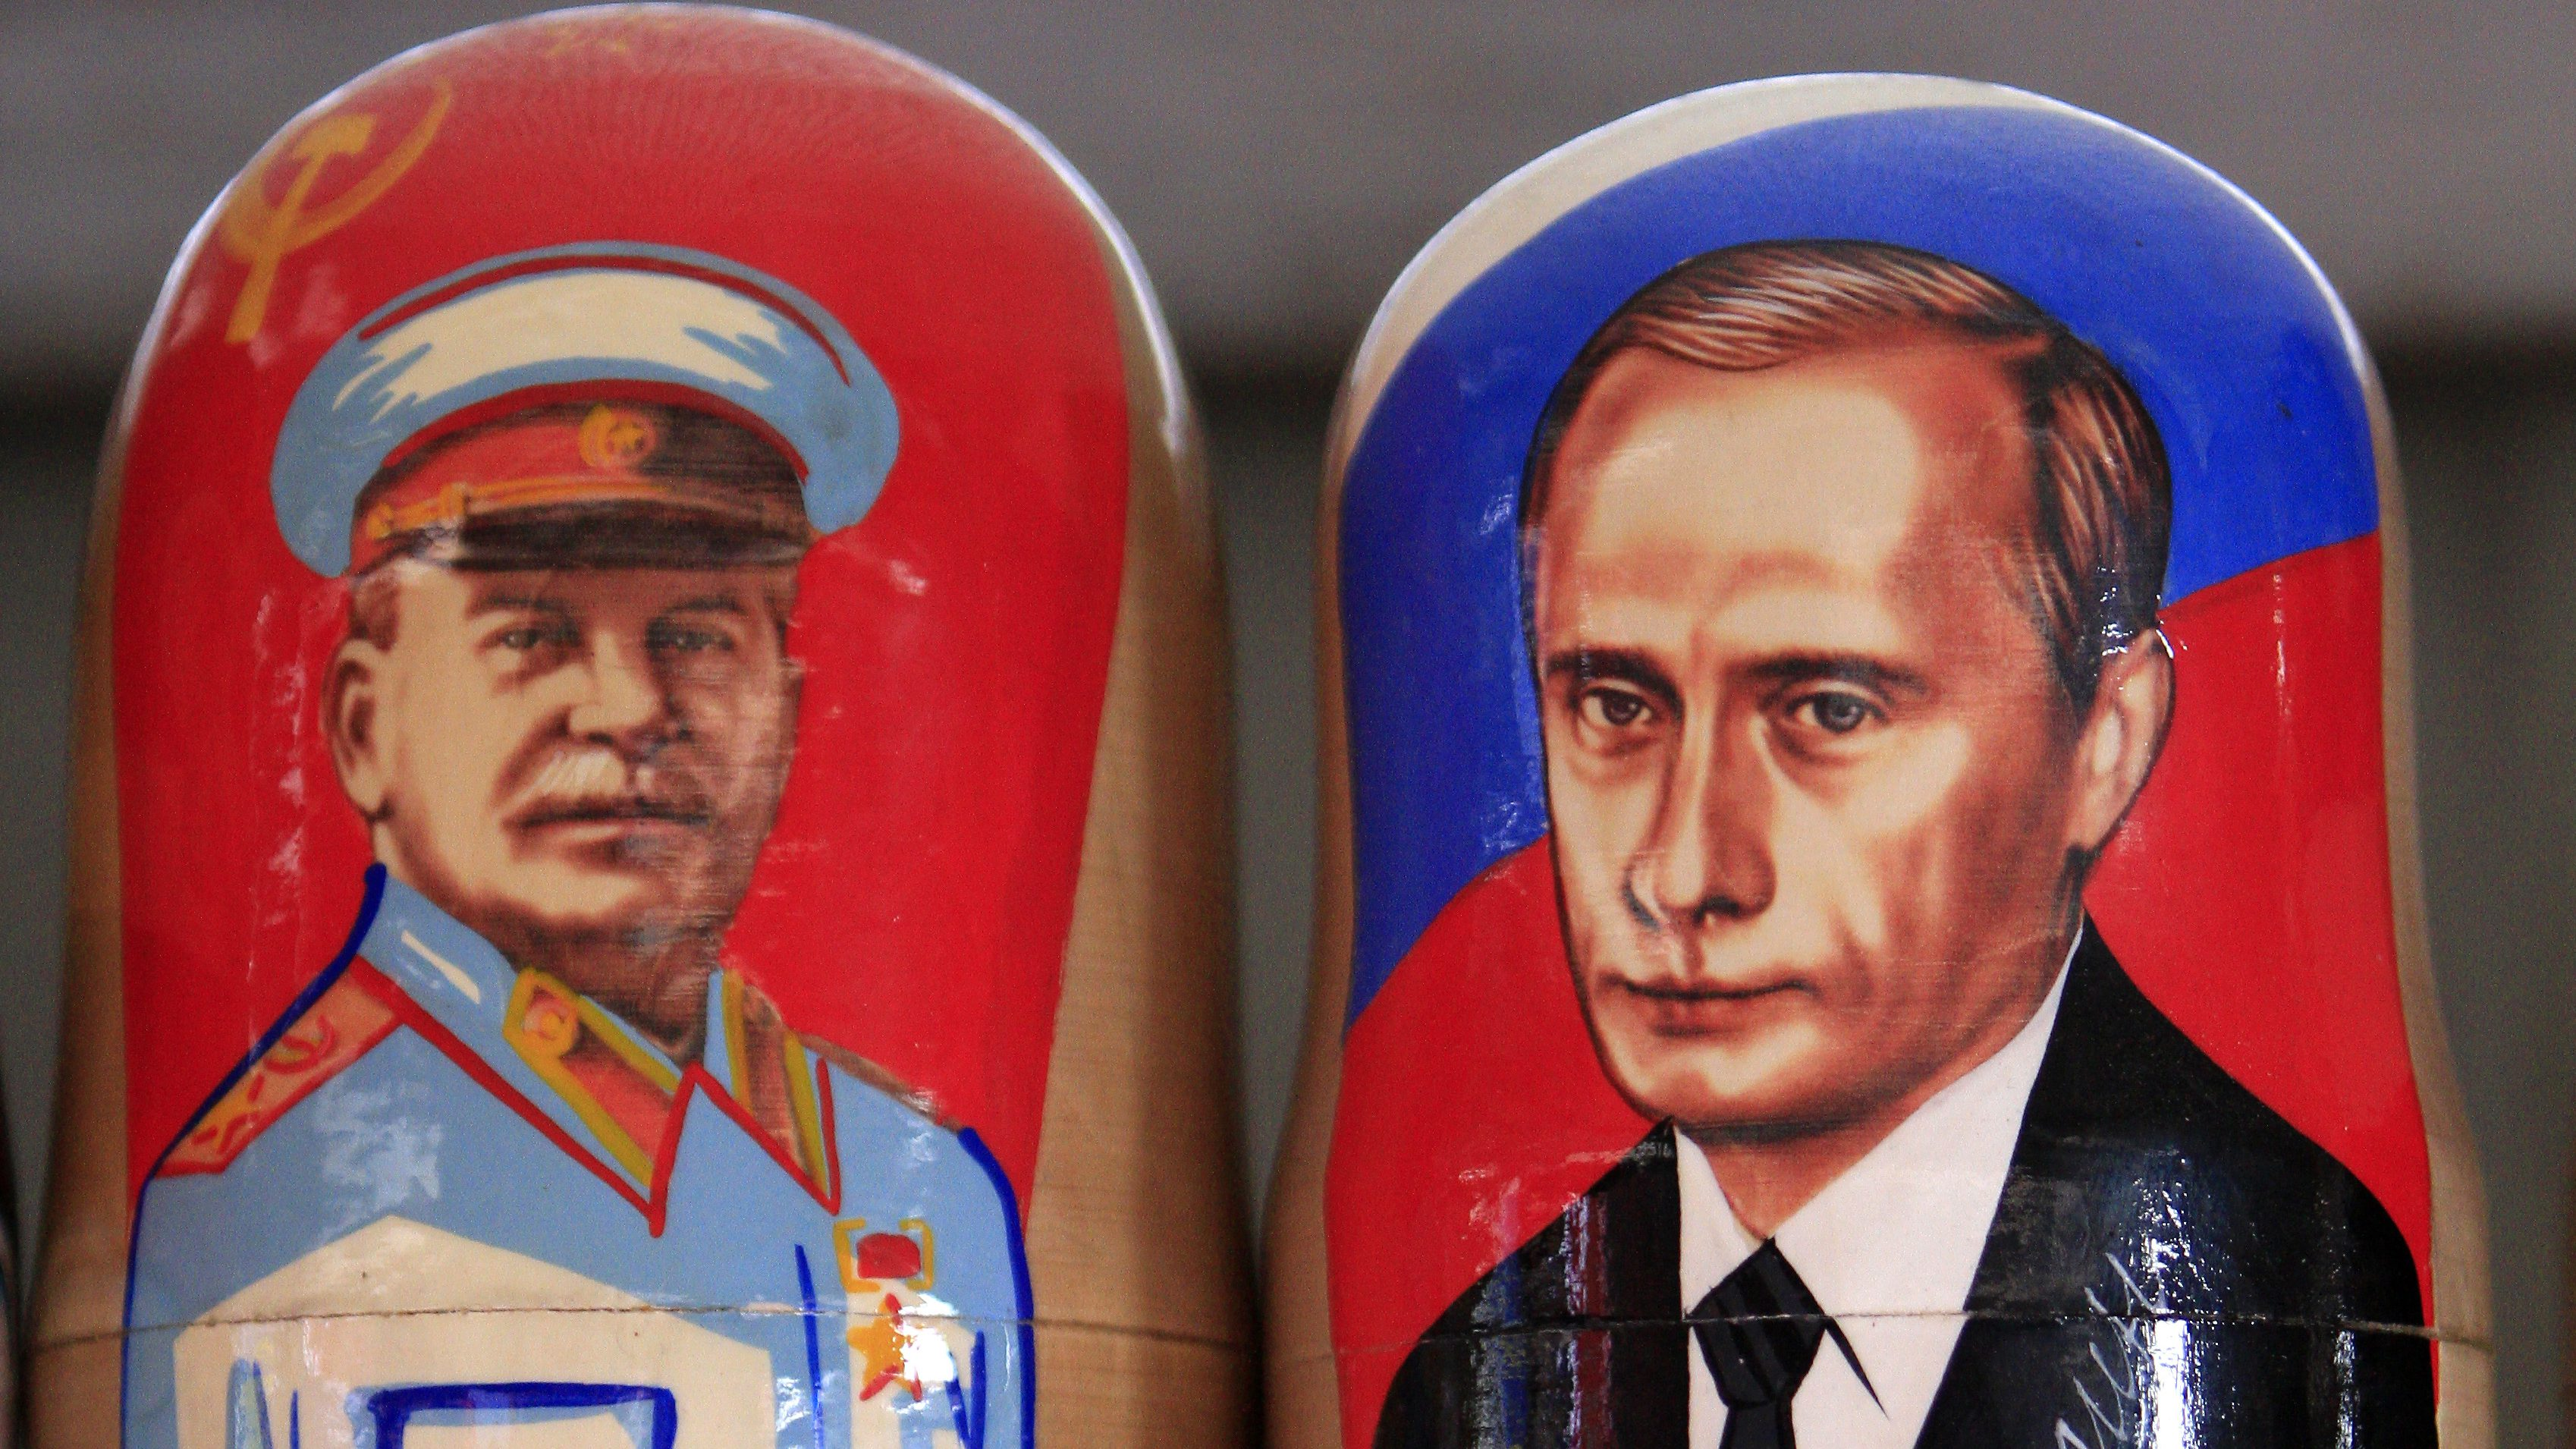 Traditional Matryoshka dolls or Russian nesting dolls bearing the faces of Russia's president elect and current Prime Minister Vladimir Putin and former Soviet dictator Josef Stalin are seen in a souvenir shop in Kiev March 5, 2012.    REUTERS/Stringer (UKRAINE  - Tags: SOCIETY)   - RTR2YWT2